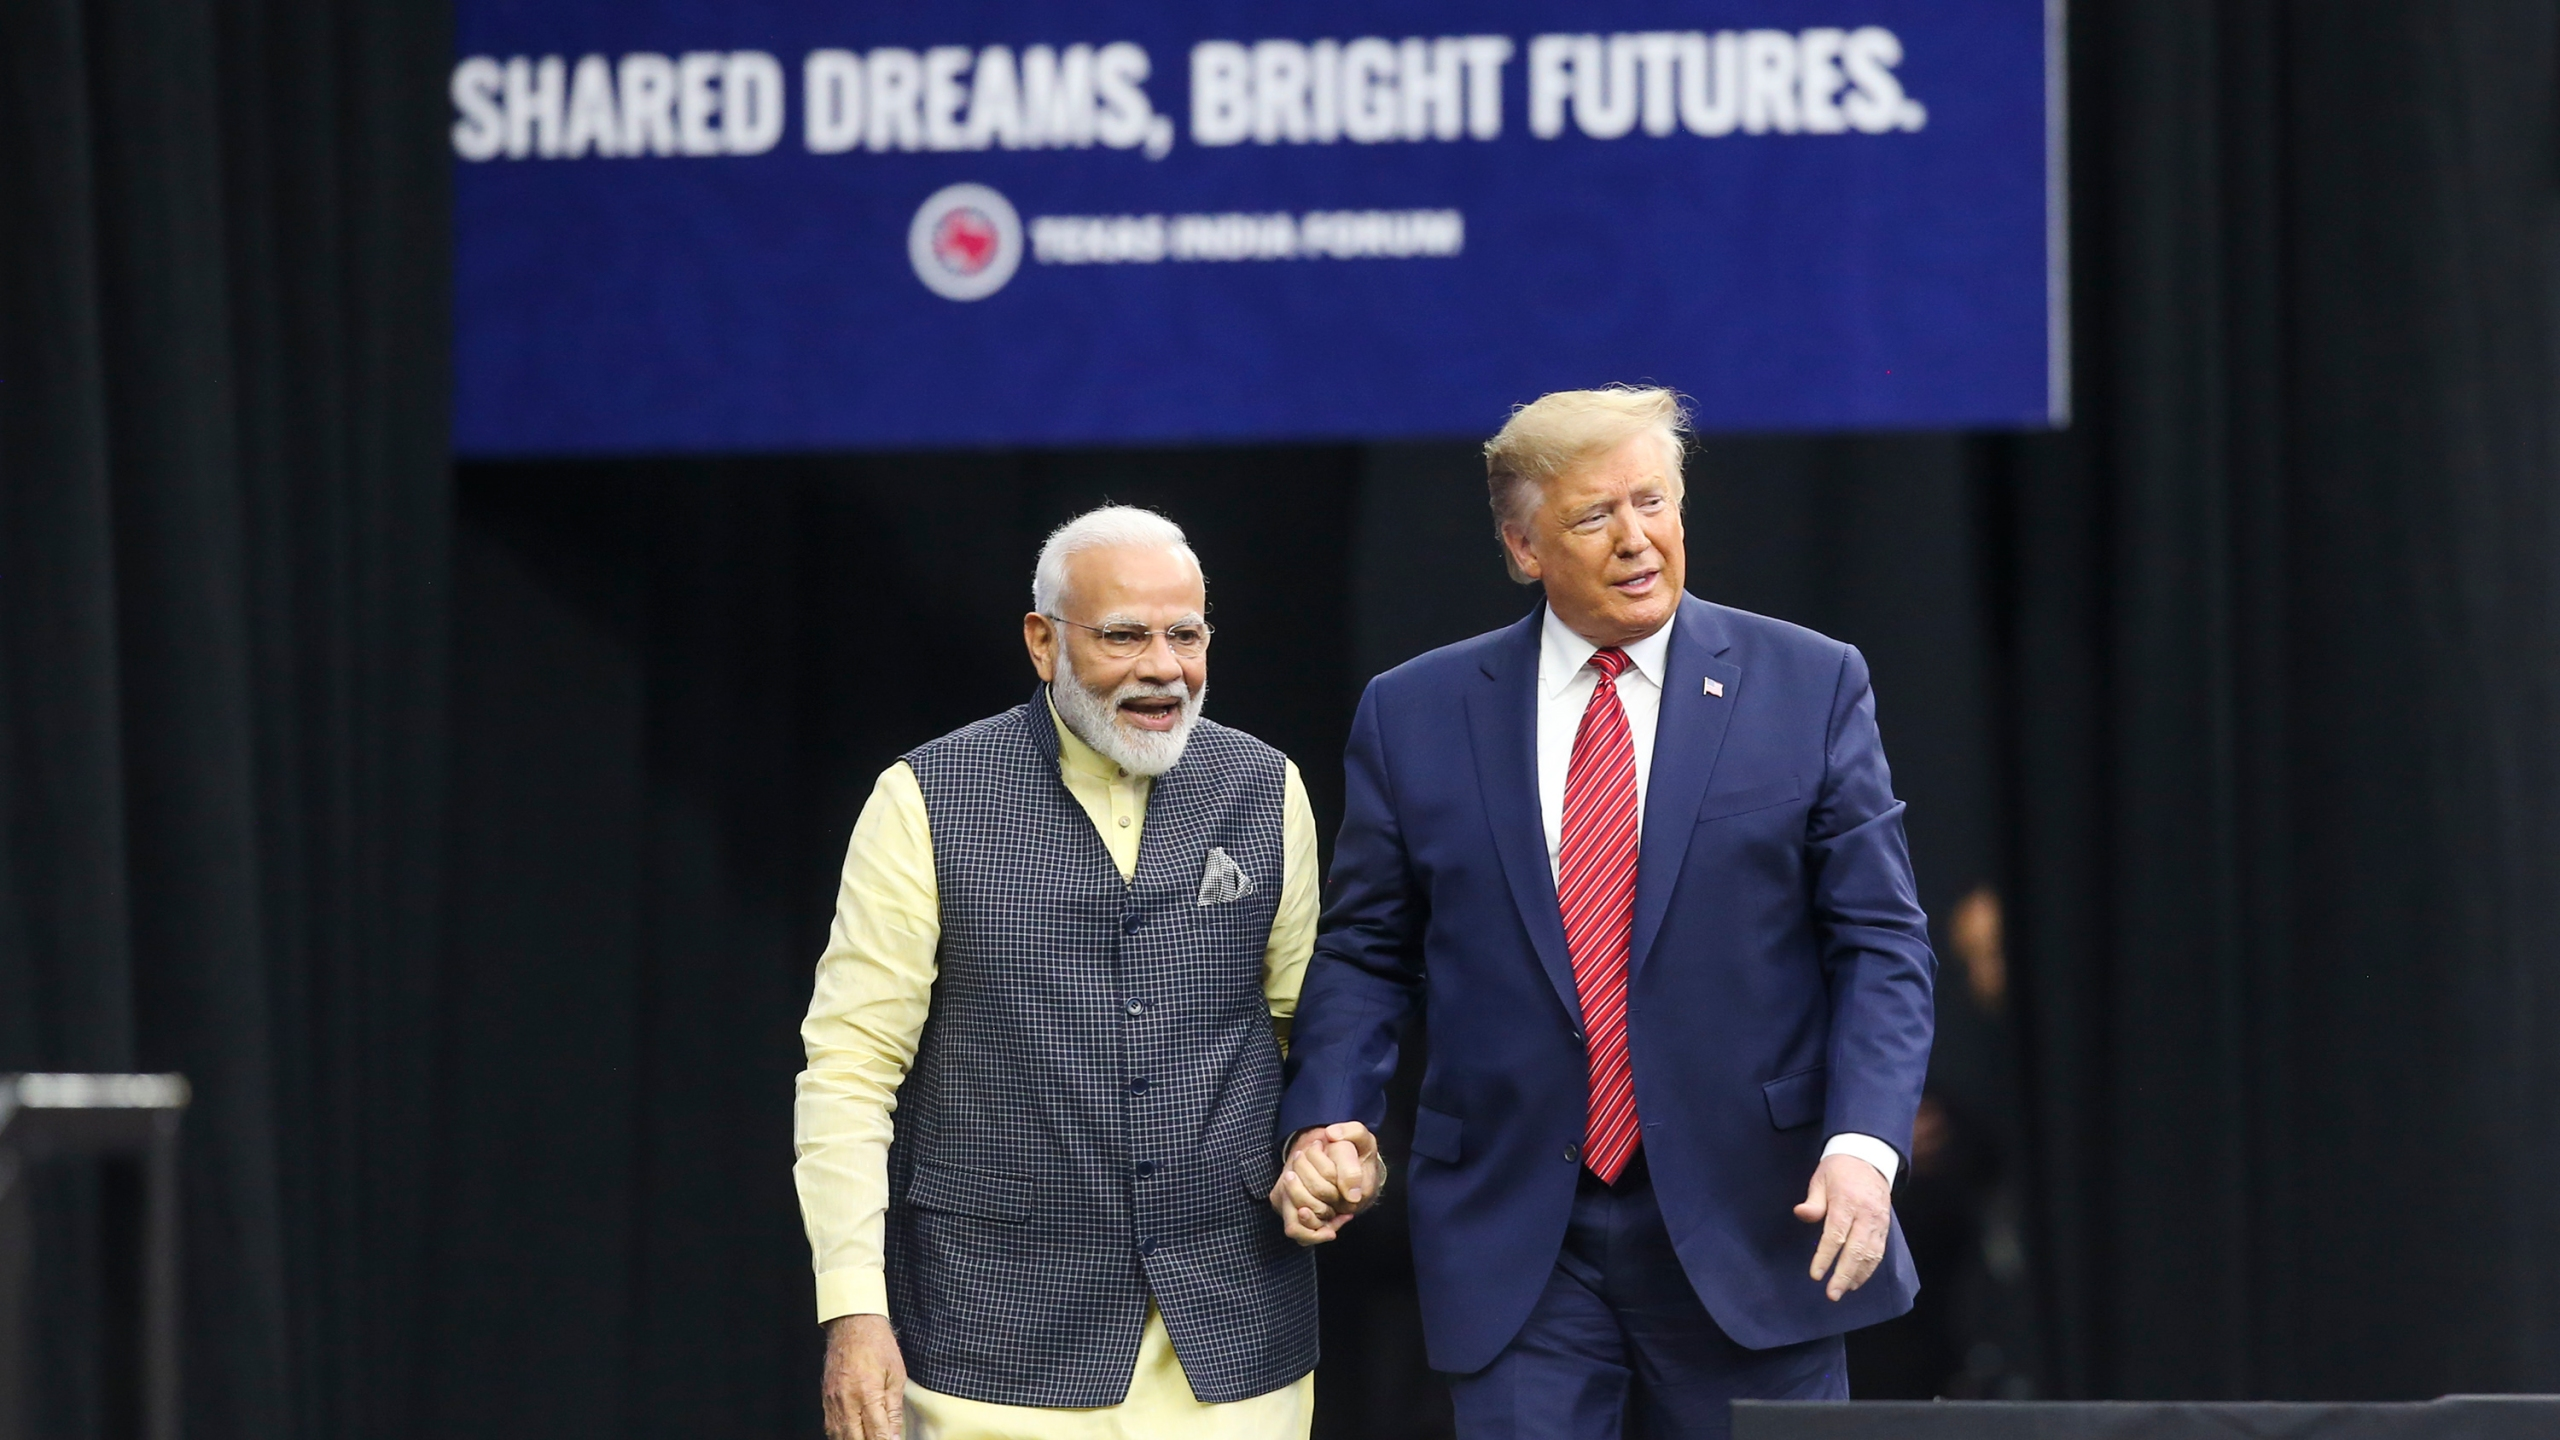 India Prime Minister Narendra Modi and President Donald Trump hold hands at the Community Summit on Sept. 22, 2019, at NRG Stadium in Houston, Texas. (Credit: Thomas B. Shea/AFP/Getty Images)